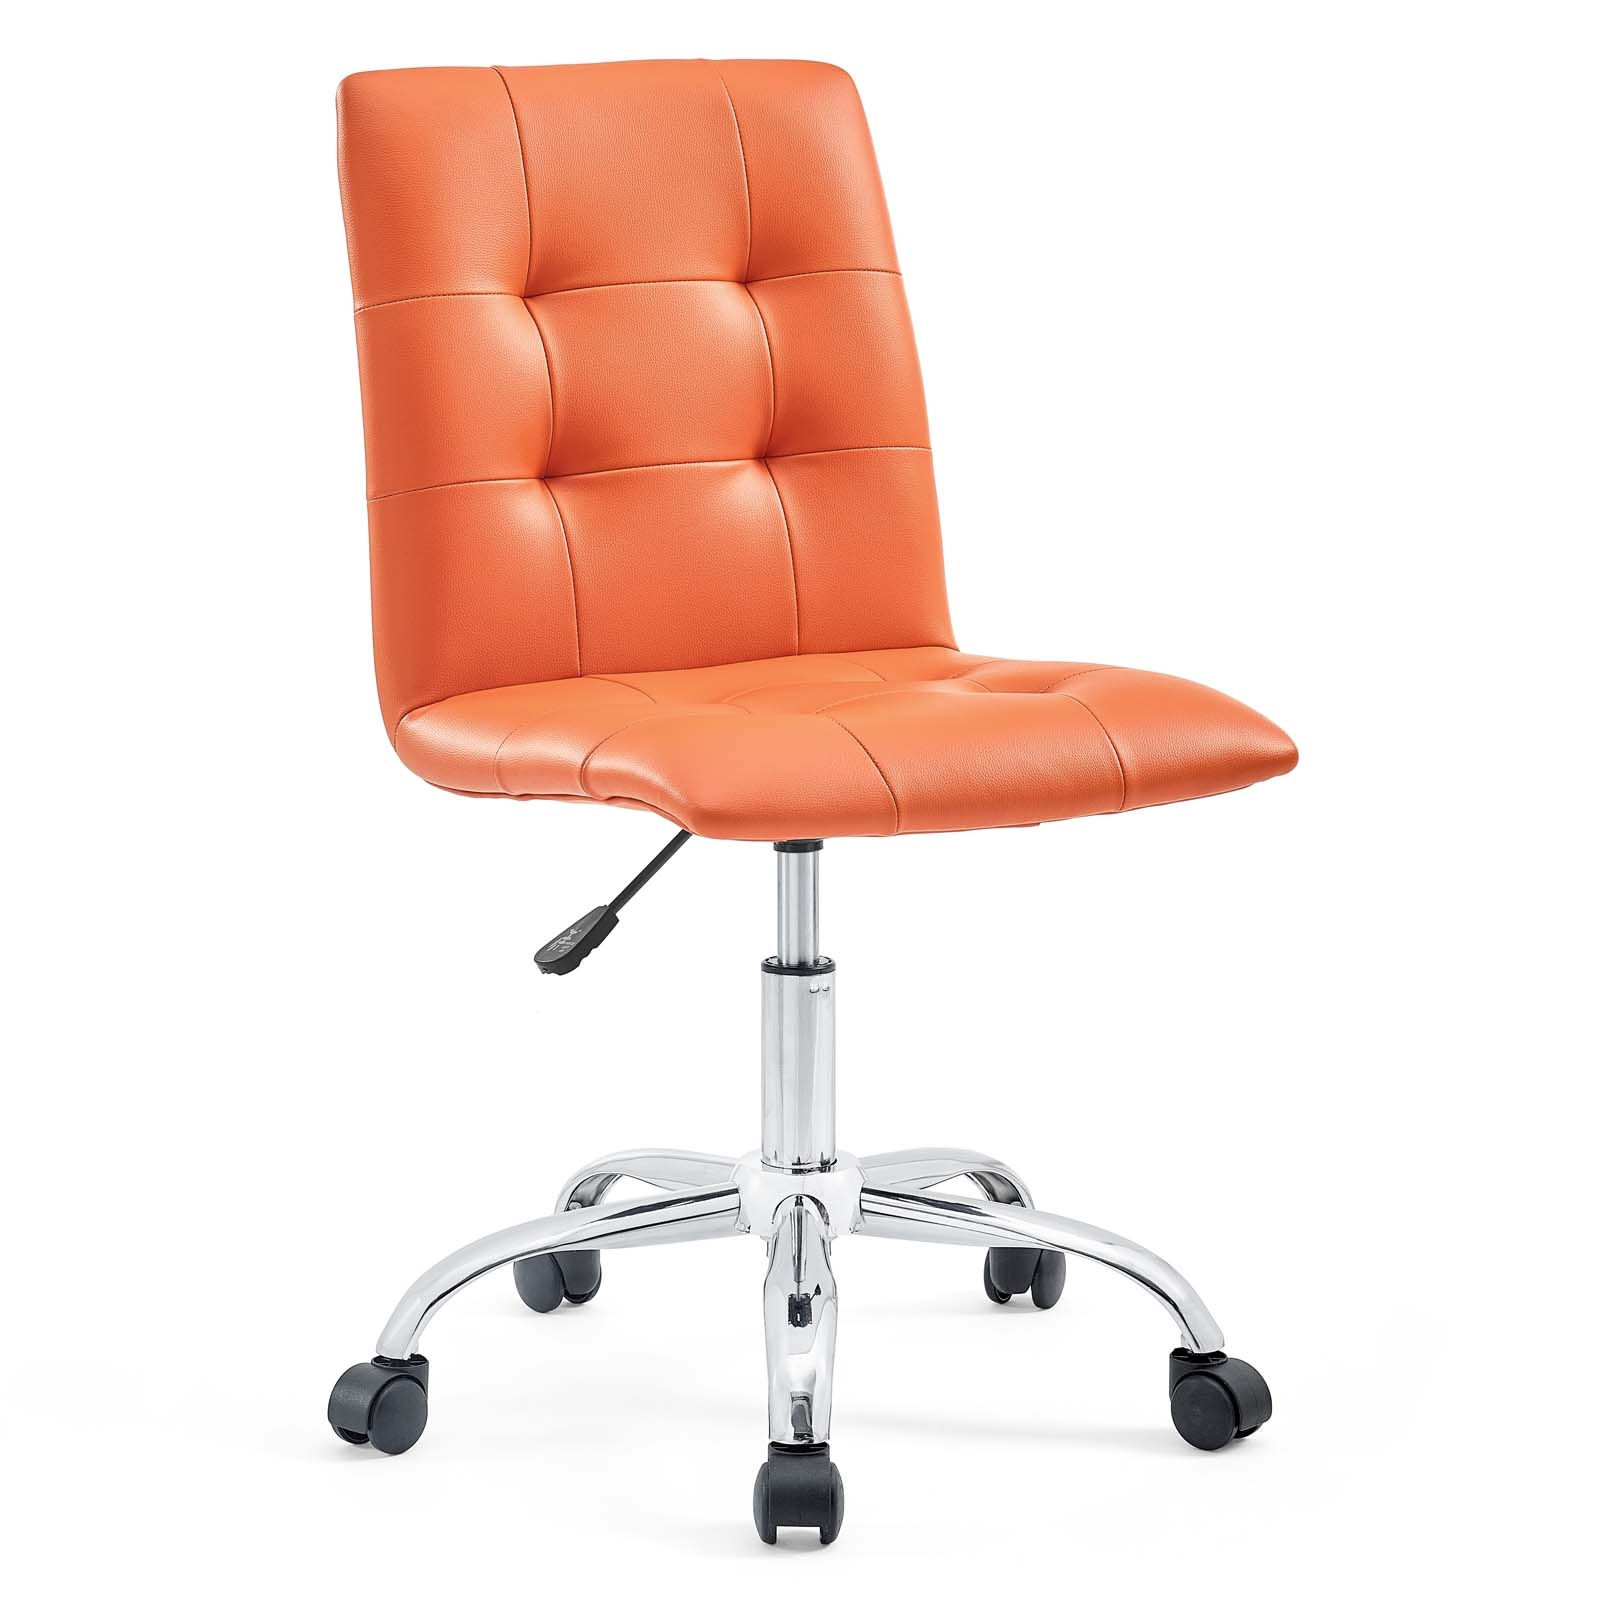 Armless Mid Back Office Chair in Orange